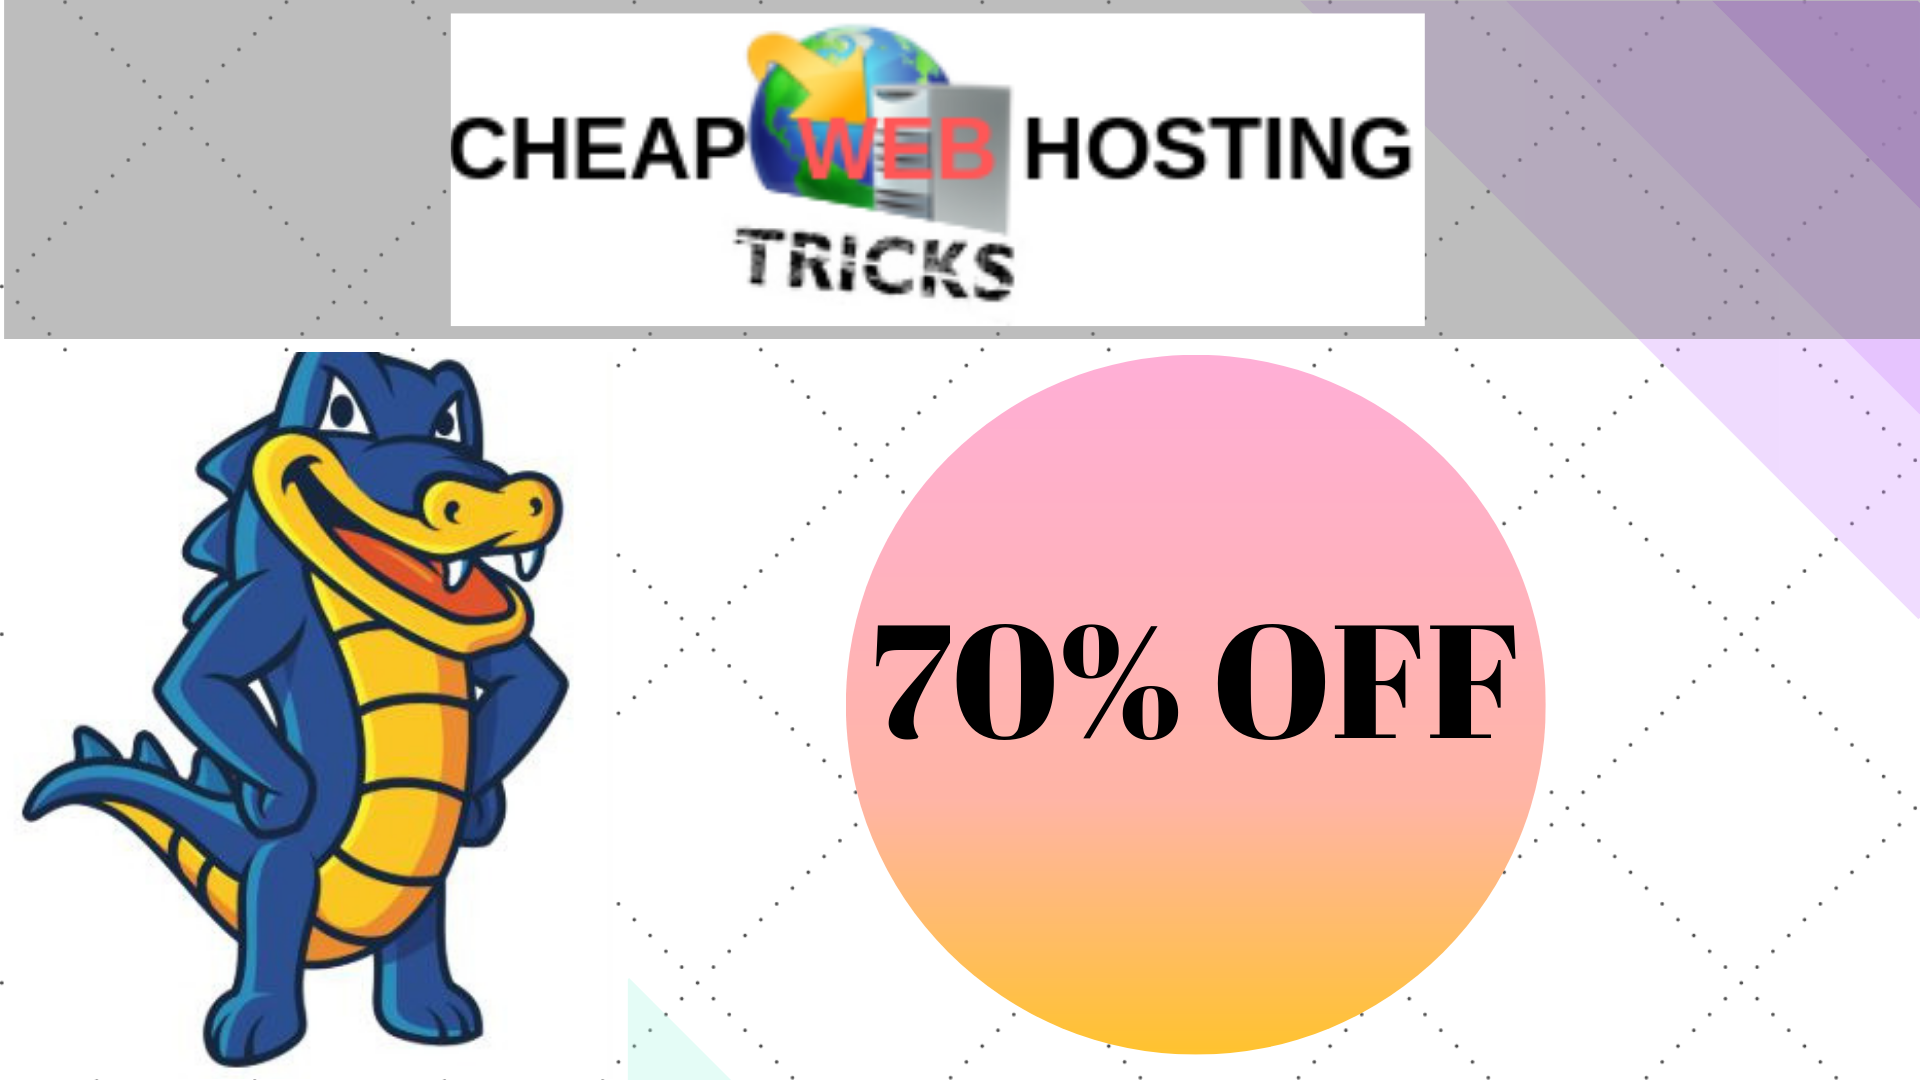 Hostgator 70% off